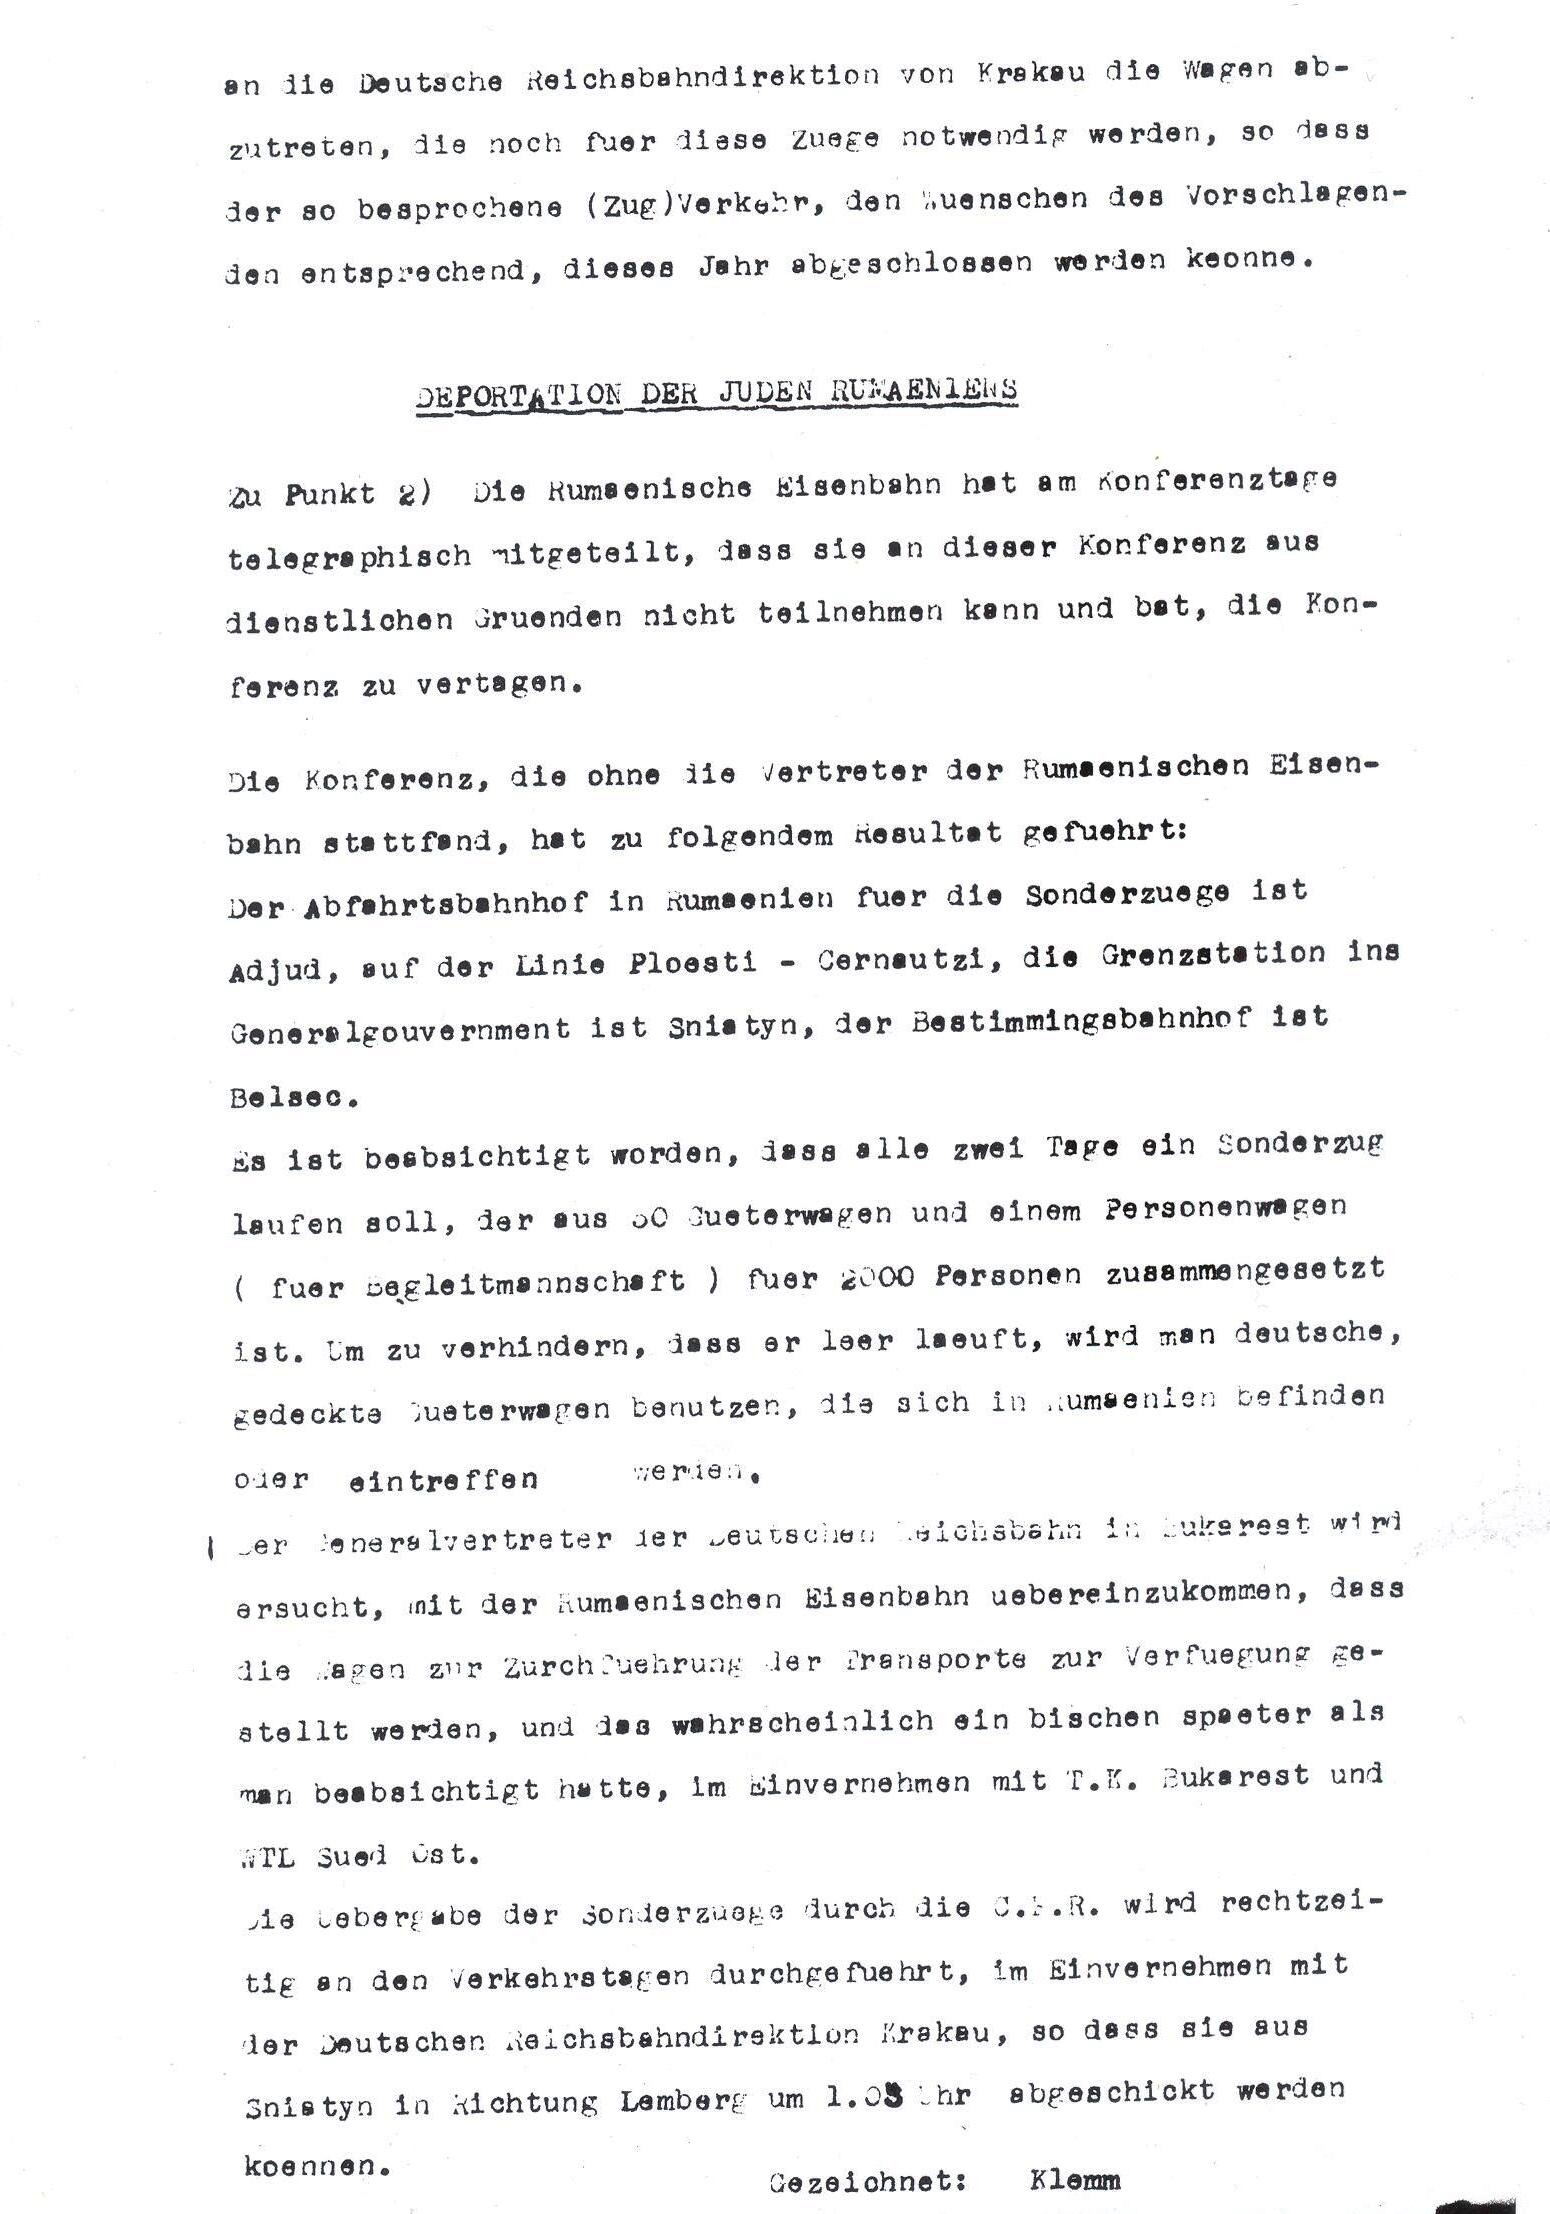 an essay on the interagency meeting for the solution of the jewish question in 1942 Conspiracy (tv movie 2001) in january 1942 in which nazi and ss leaders gathered in a berlin suburb to discuss the final solution to the jewish question.